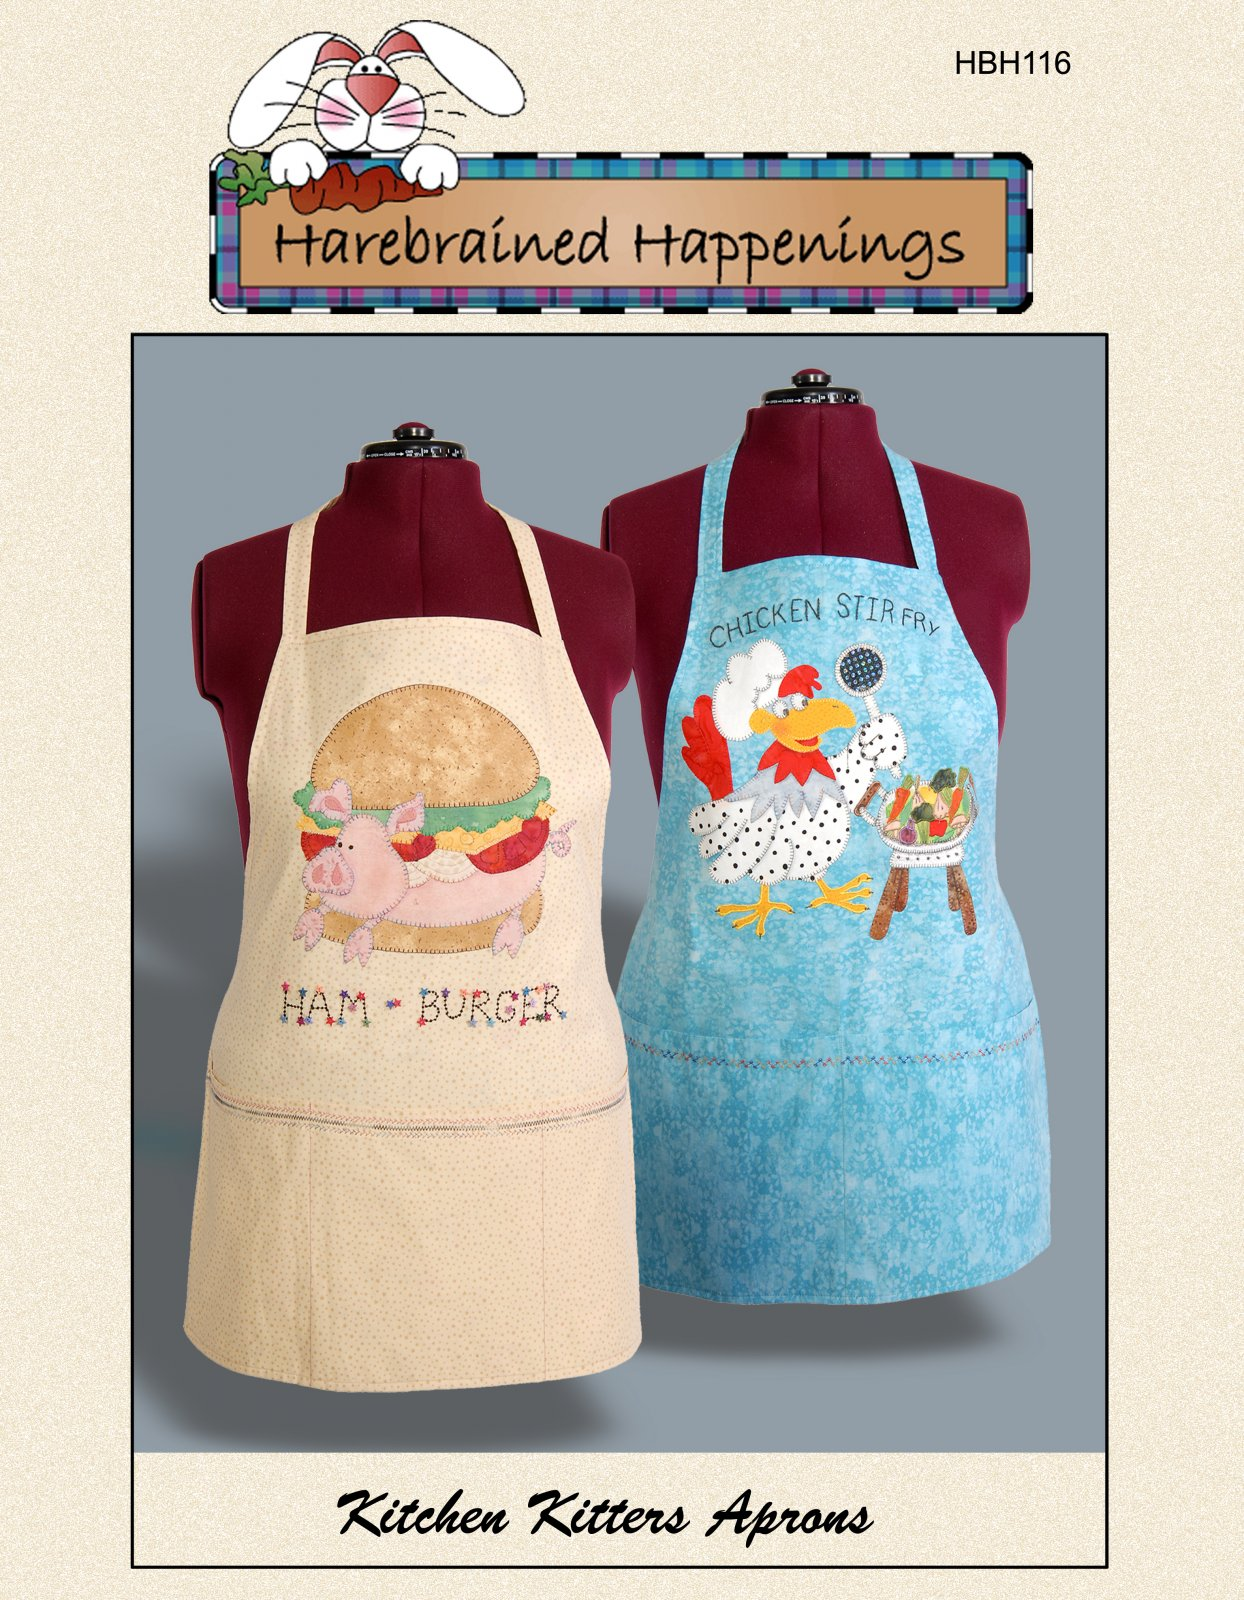 HBH116 Kitchen Kritters Aprons